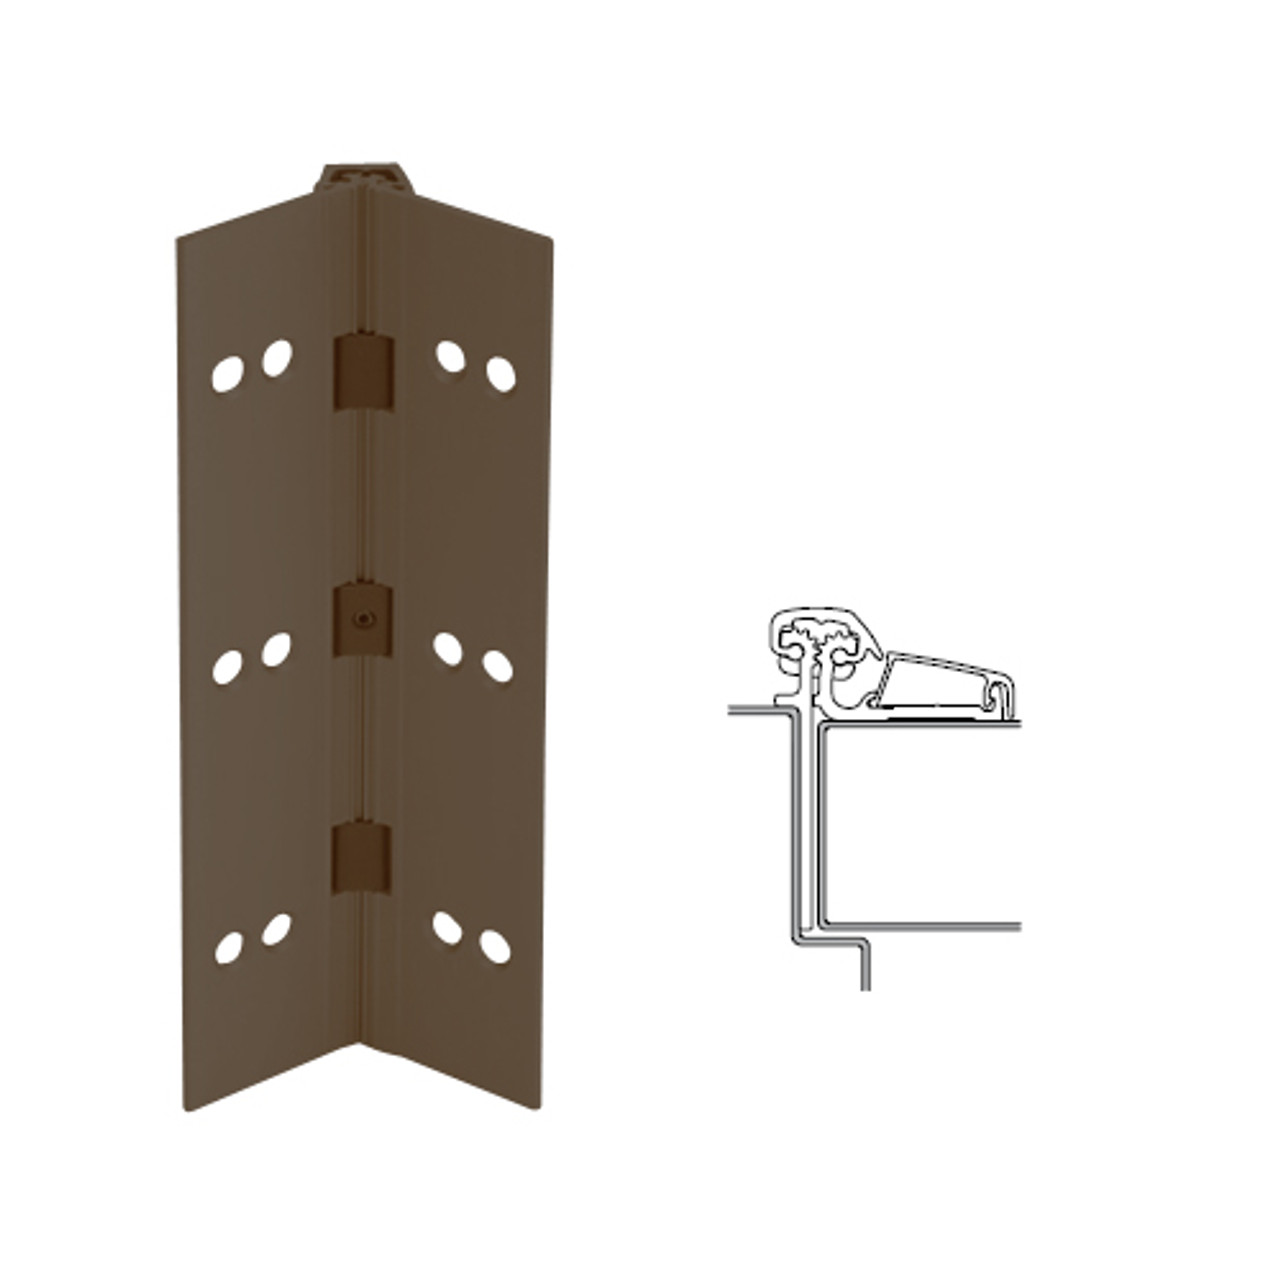 054XY-313AN-83-SECWDHM IVES Adjustable Half Surface Continuous Geared Hinges with Security Screws - Hex Pin Drive in Dark Bronze Anodized